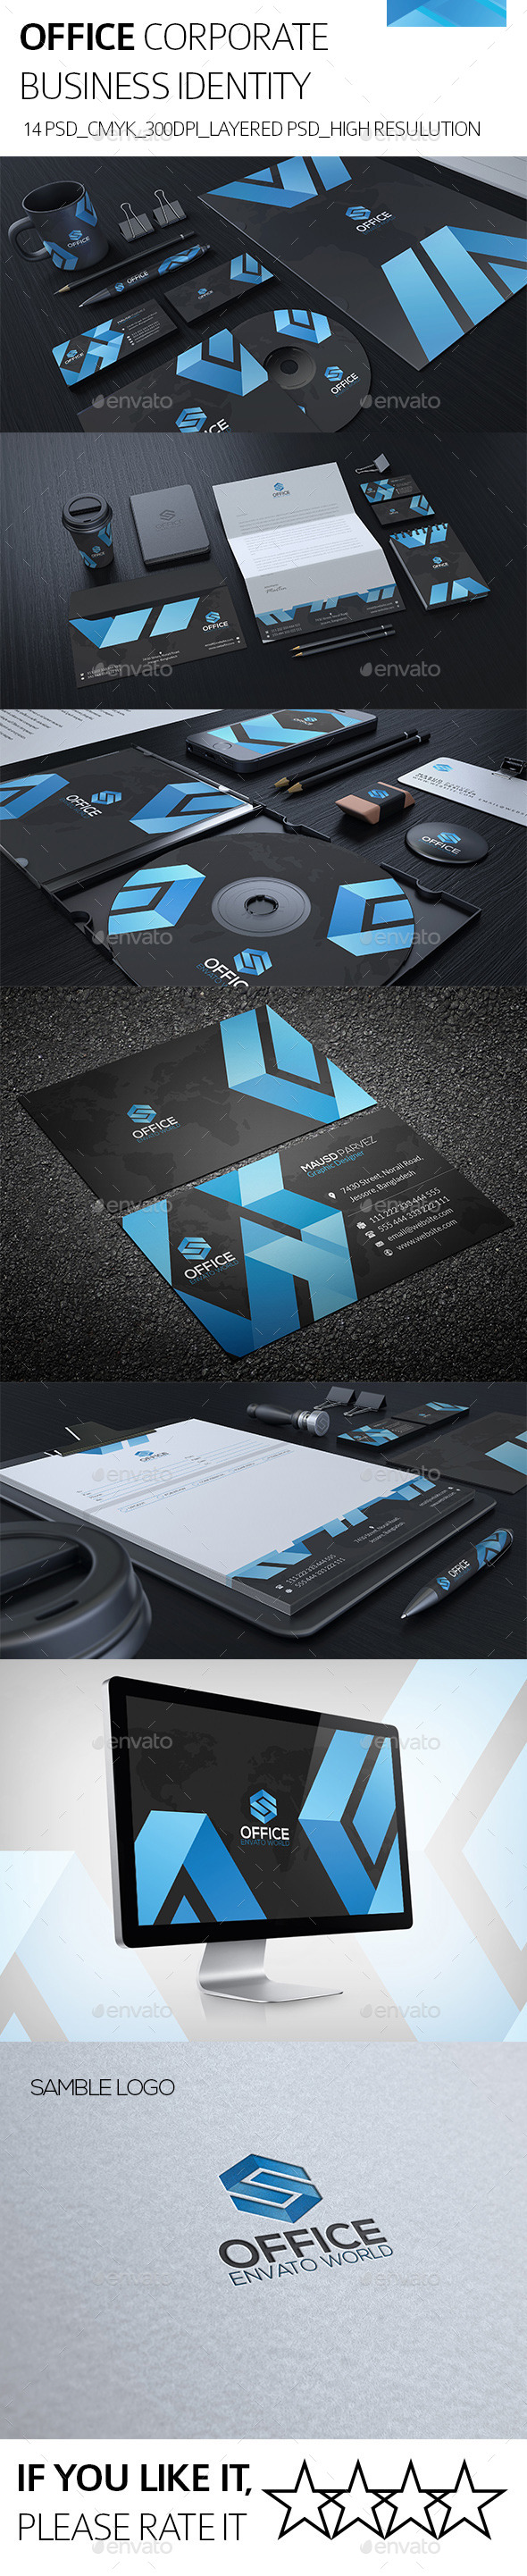 Office Corporate Identity - Stationery Print Templates